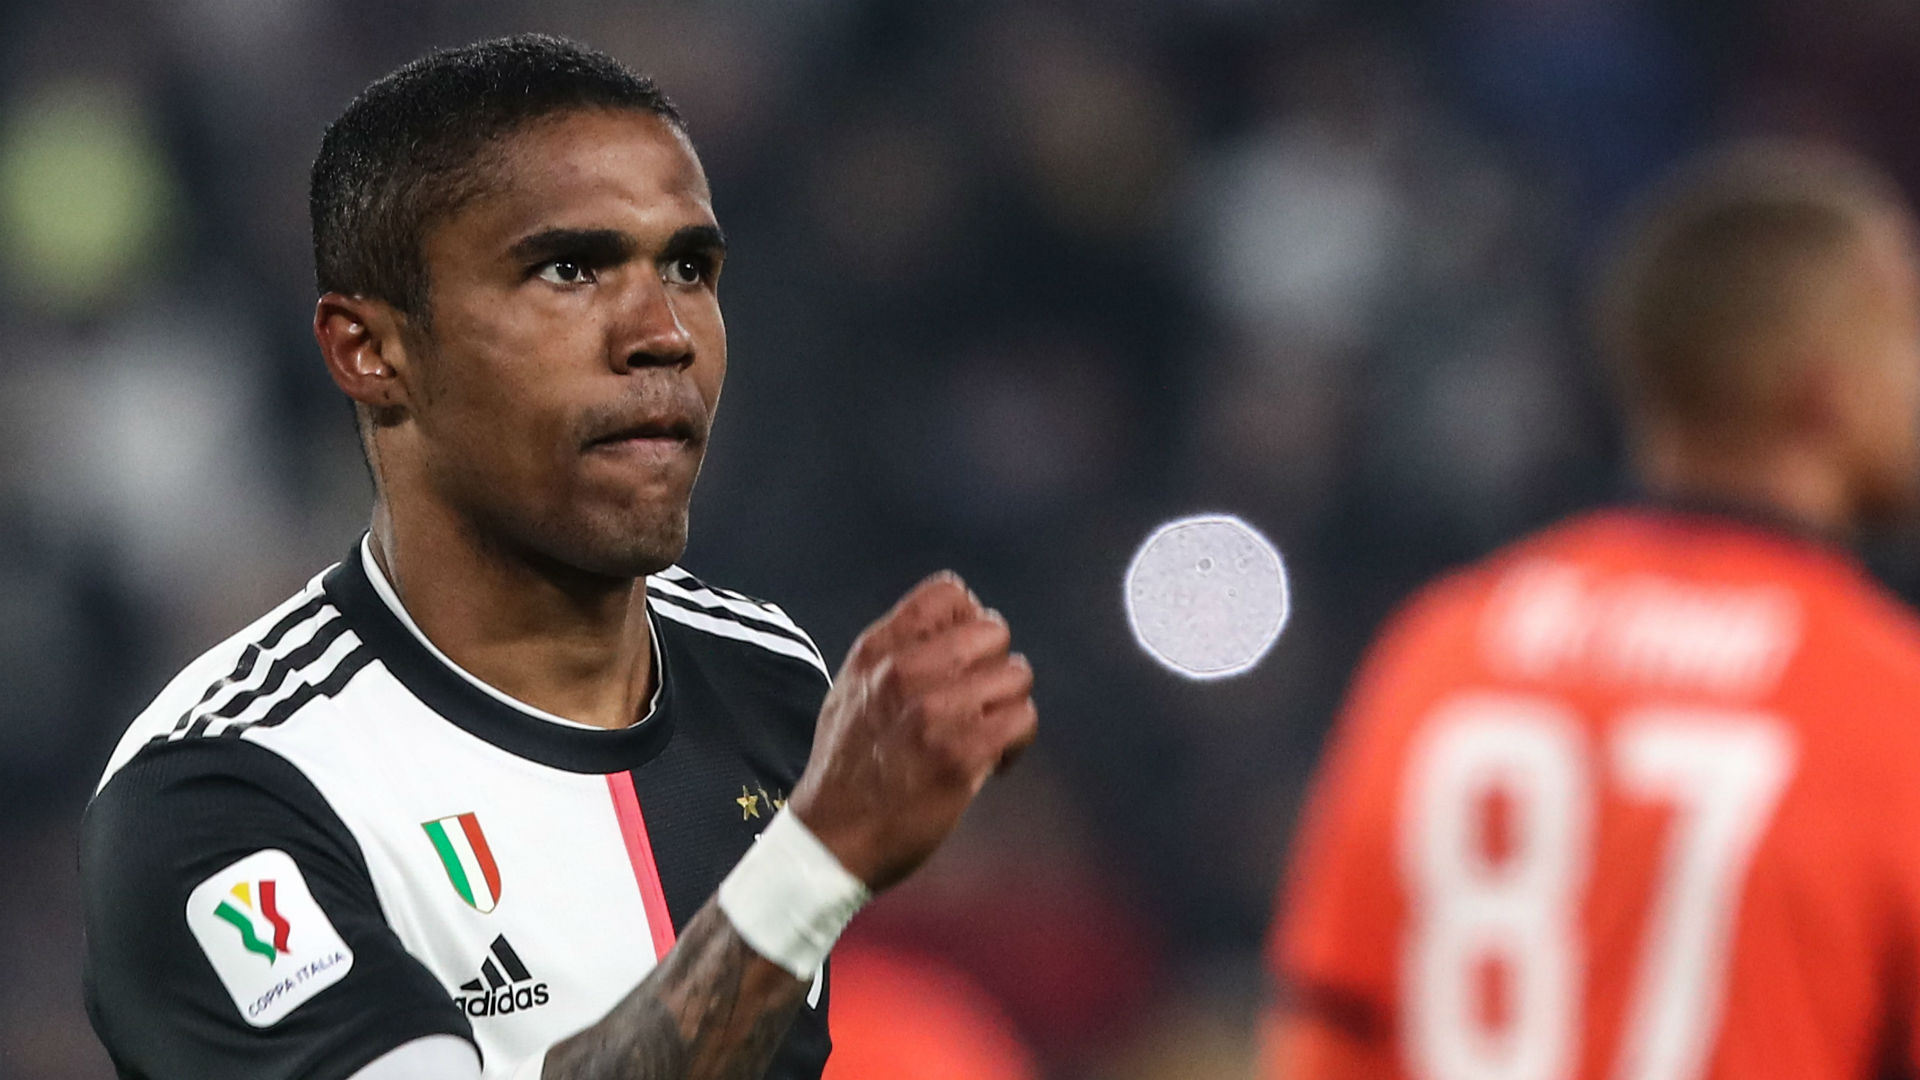 Bayern Munich announce Douglas Costa return on loan from Juventus and signing of Choupo-Moting